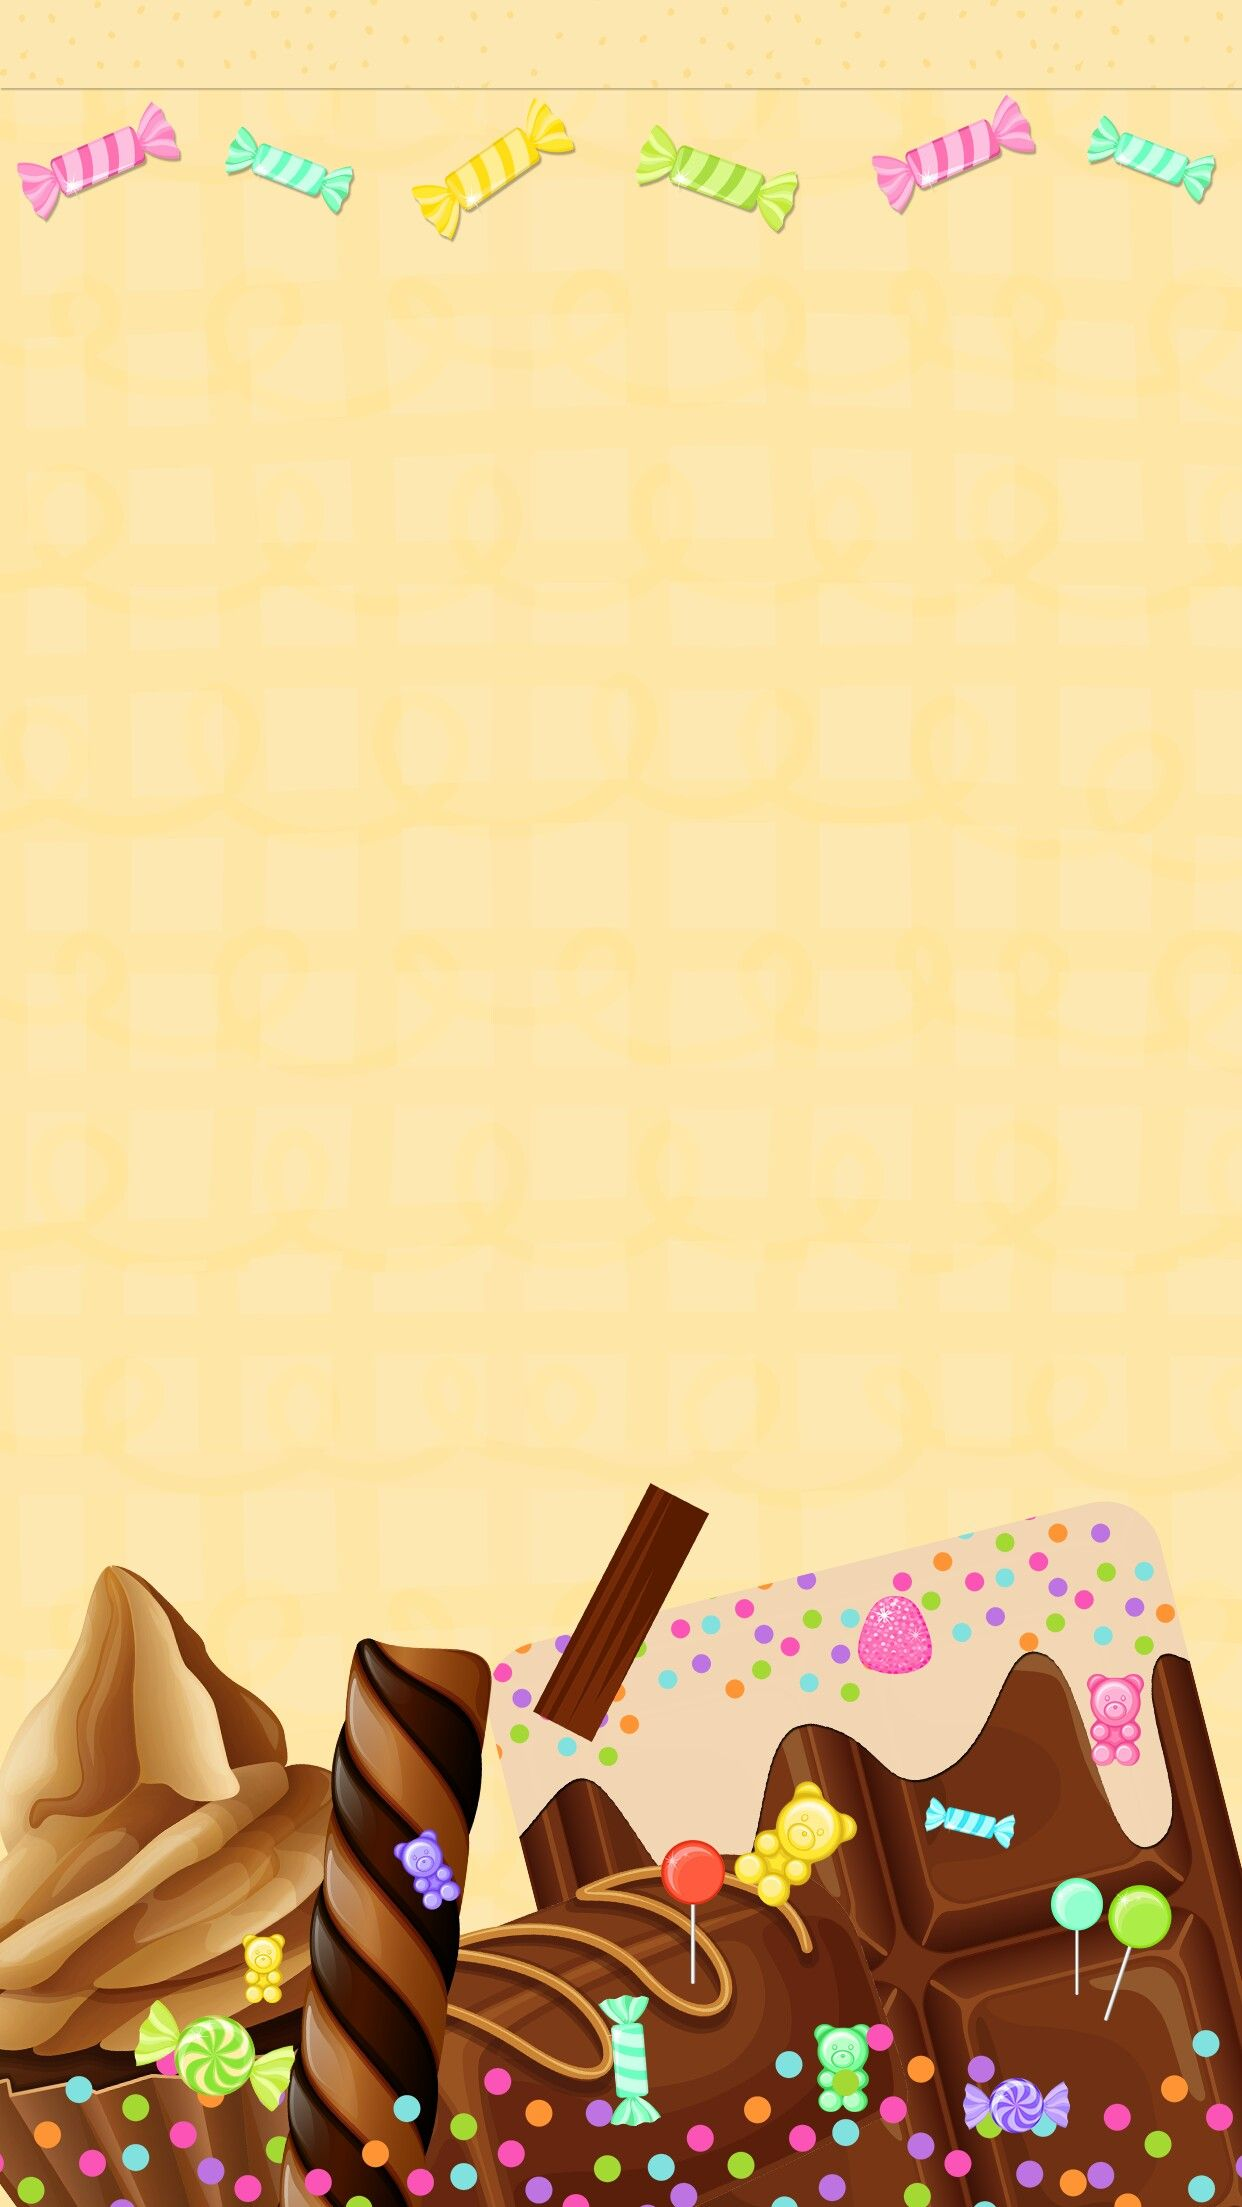 Cute Hello Kitty Wallpaper Cell Phone Chocolate Kiss Yummy Walls Pinterest Wallpaper